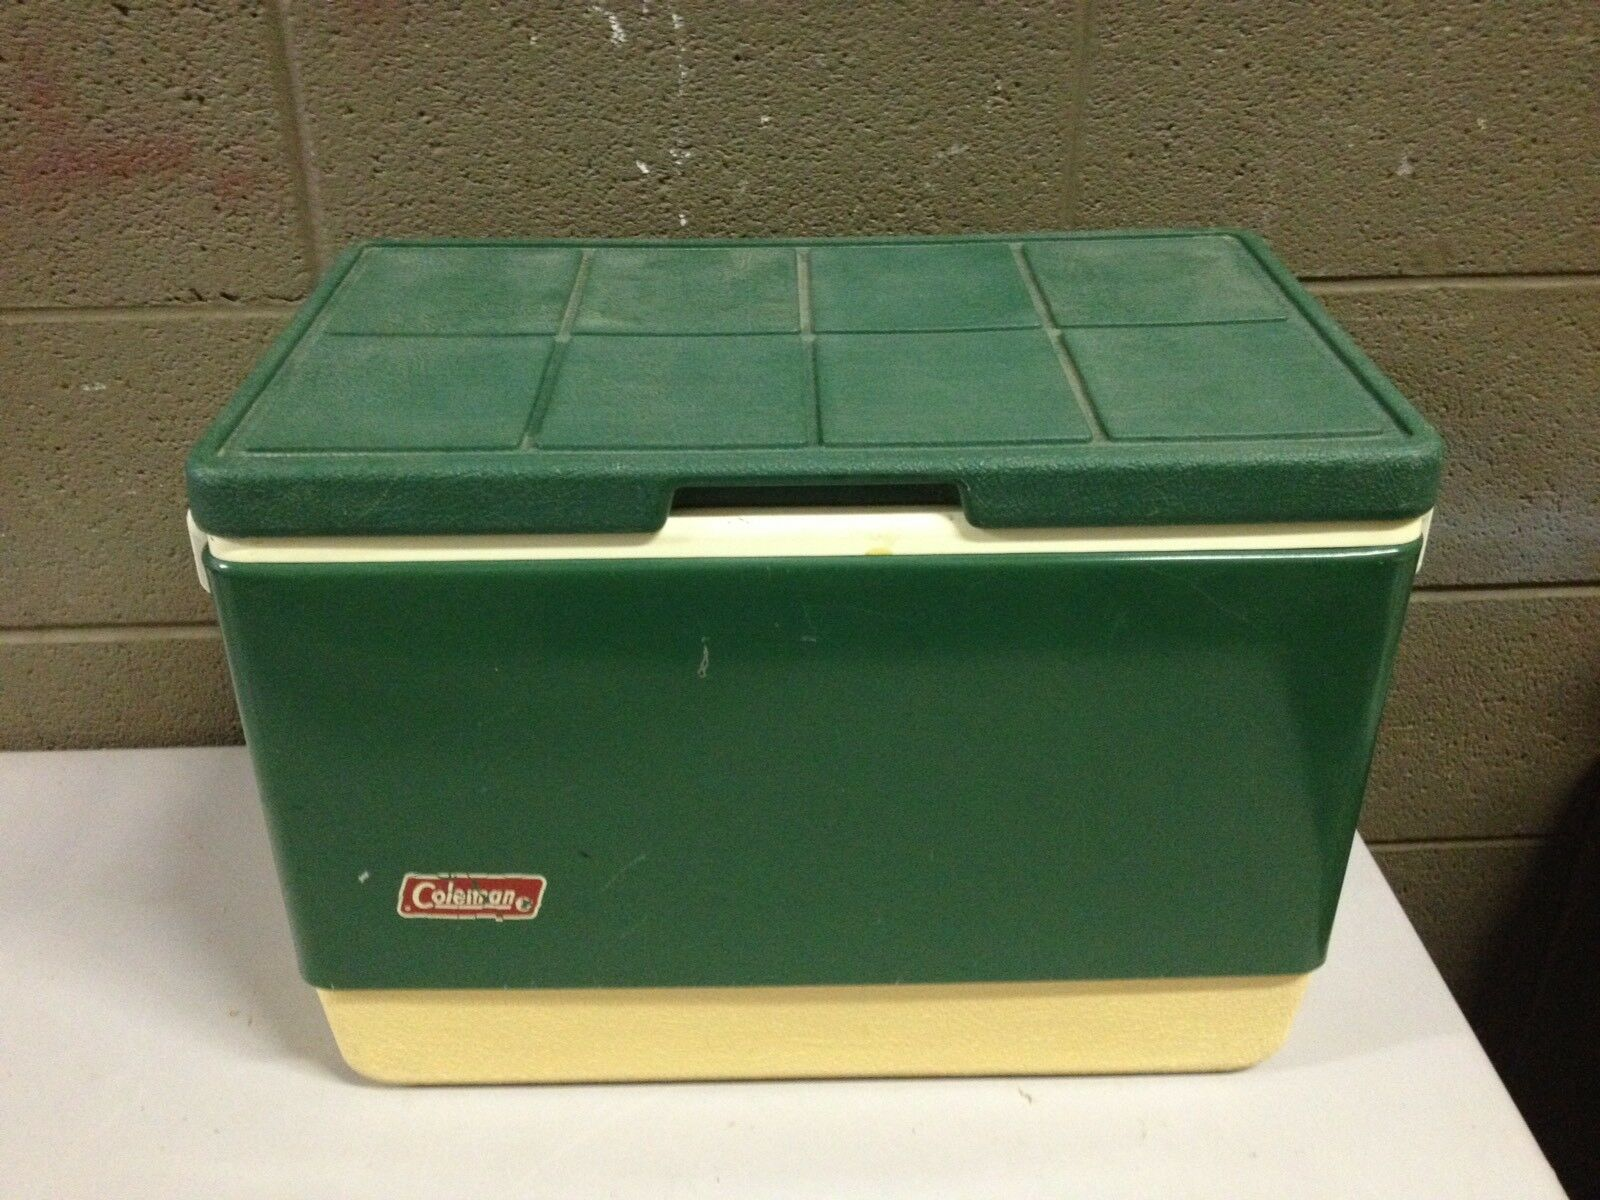 Vintage Coleman Green Metal Band Ice Chest Cooler Box (c21)